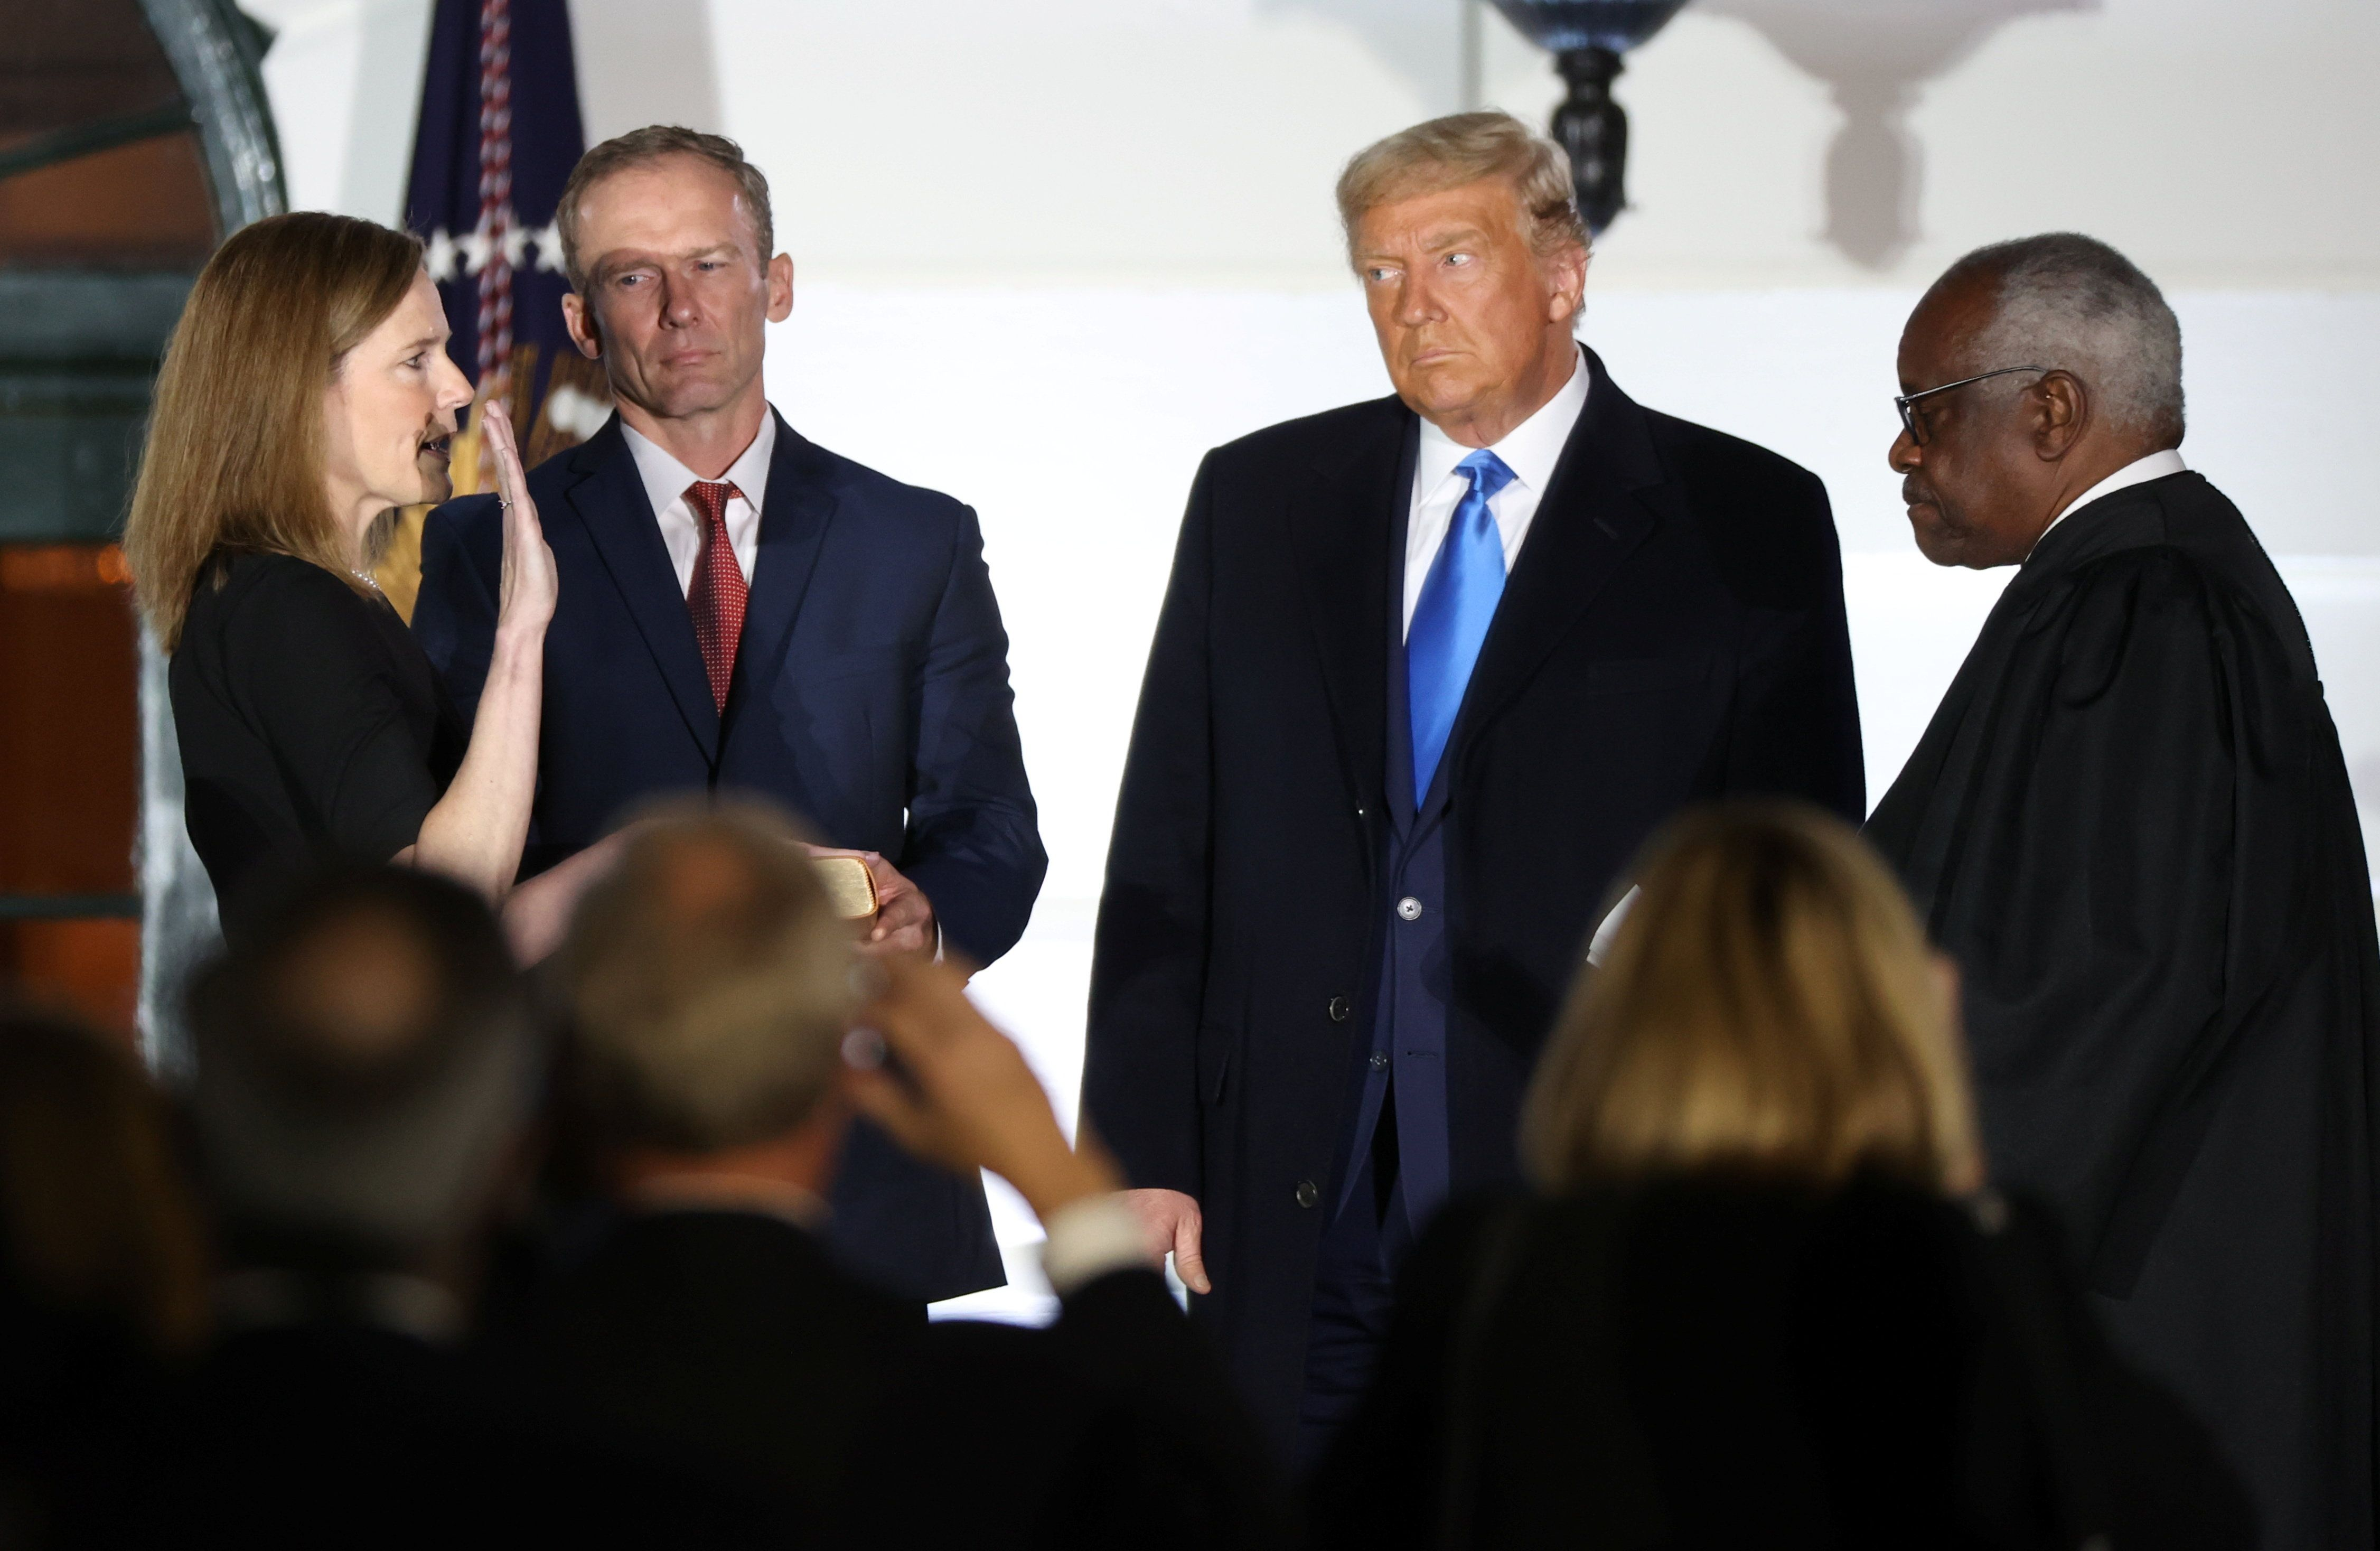 Judge Amy Coney Barrett is sworn in as an associate justice of the U.S. Supreme Court by Supreme Court Justice Clarence Thomas as her husband Jesse Barrett and President Donald Trump watch on the South Lawn of the White House in Washington, U.S., October 26, 2020